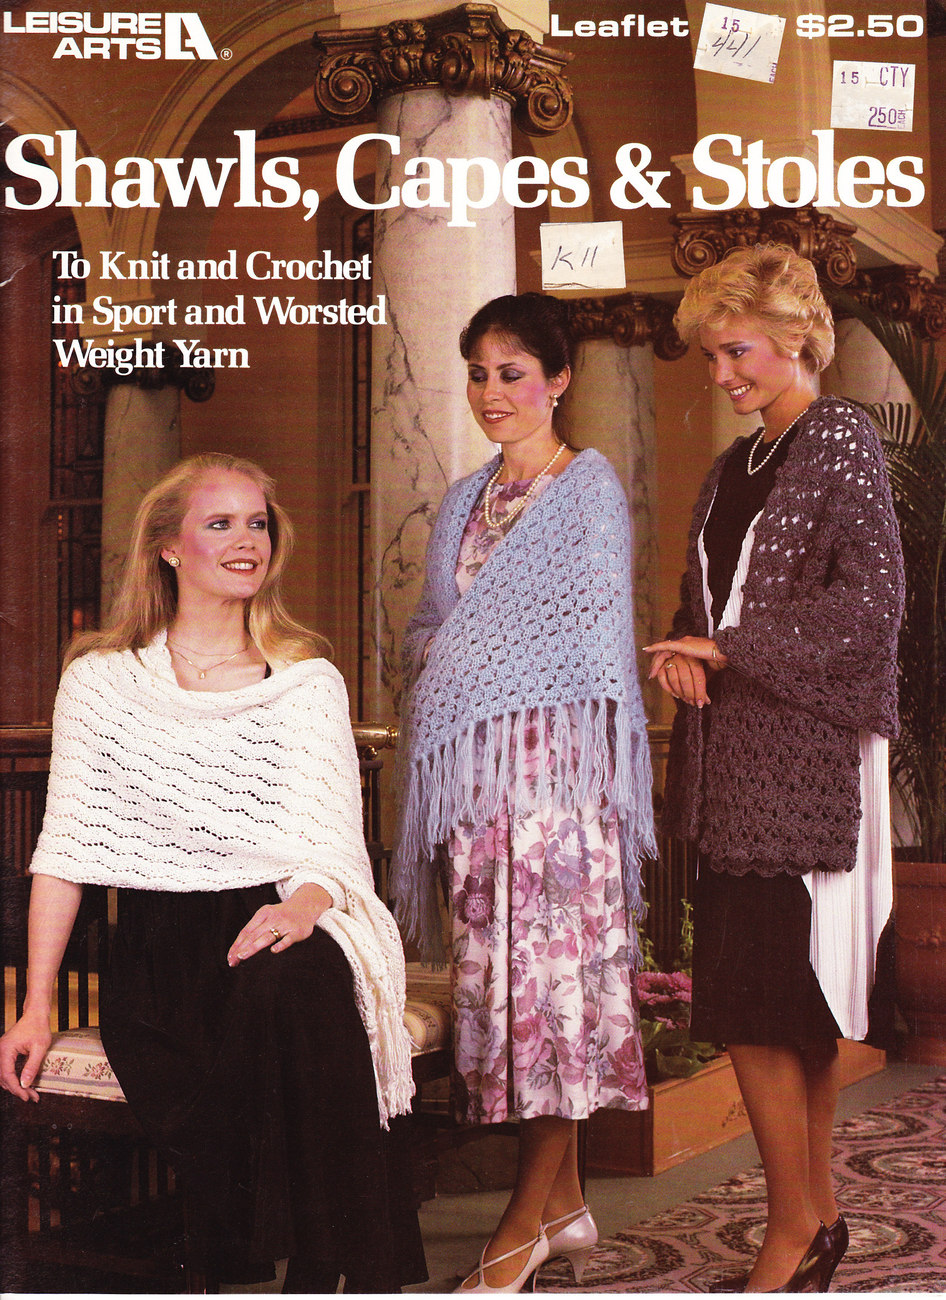 SHAWLS, CAPES & STOLES KNIT & CROCHET  LEISURE ARTS 441 - $3.50